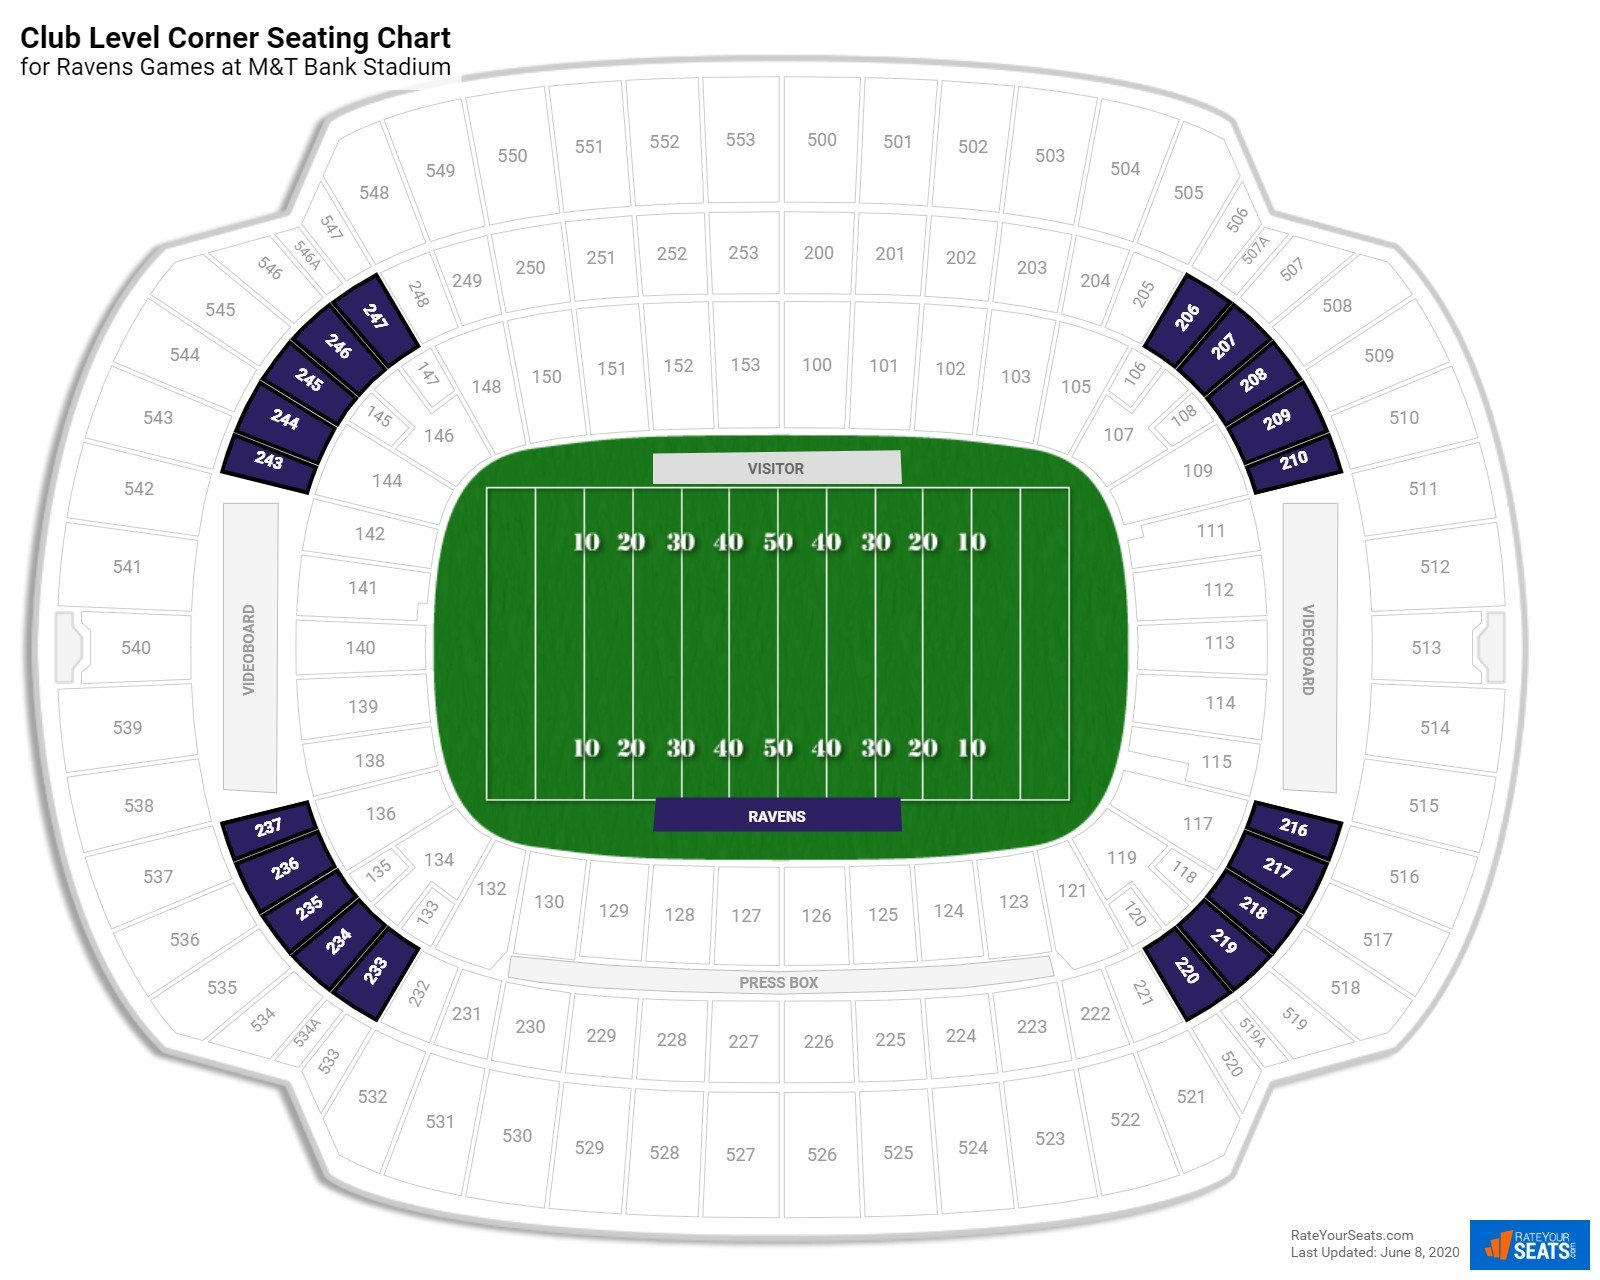 M&T Bank Stadium Club Level Corner seating chart